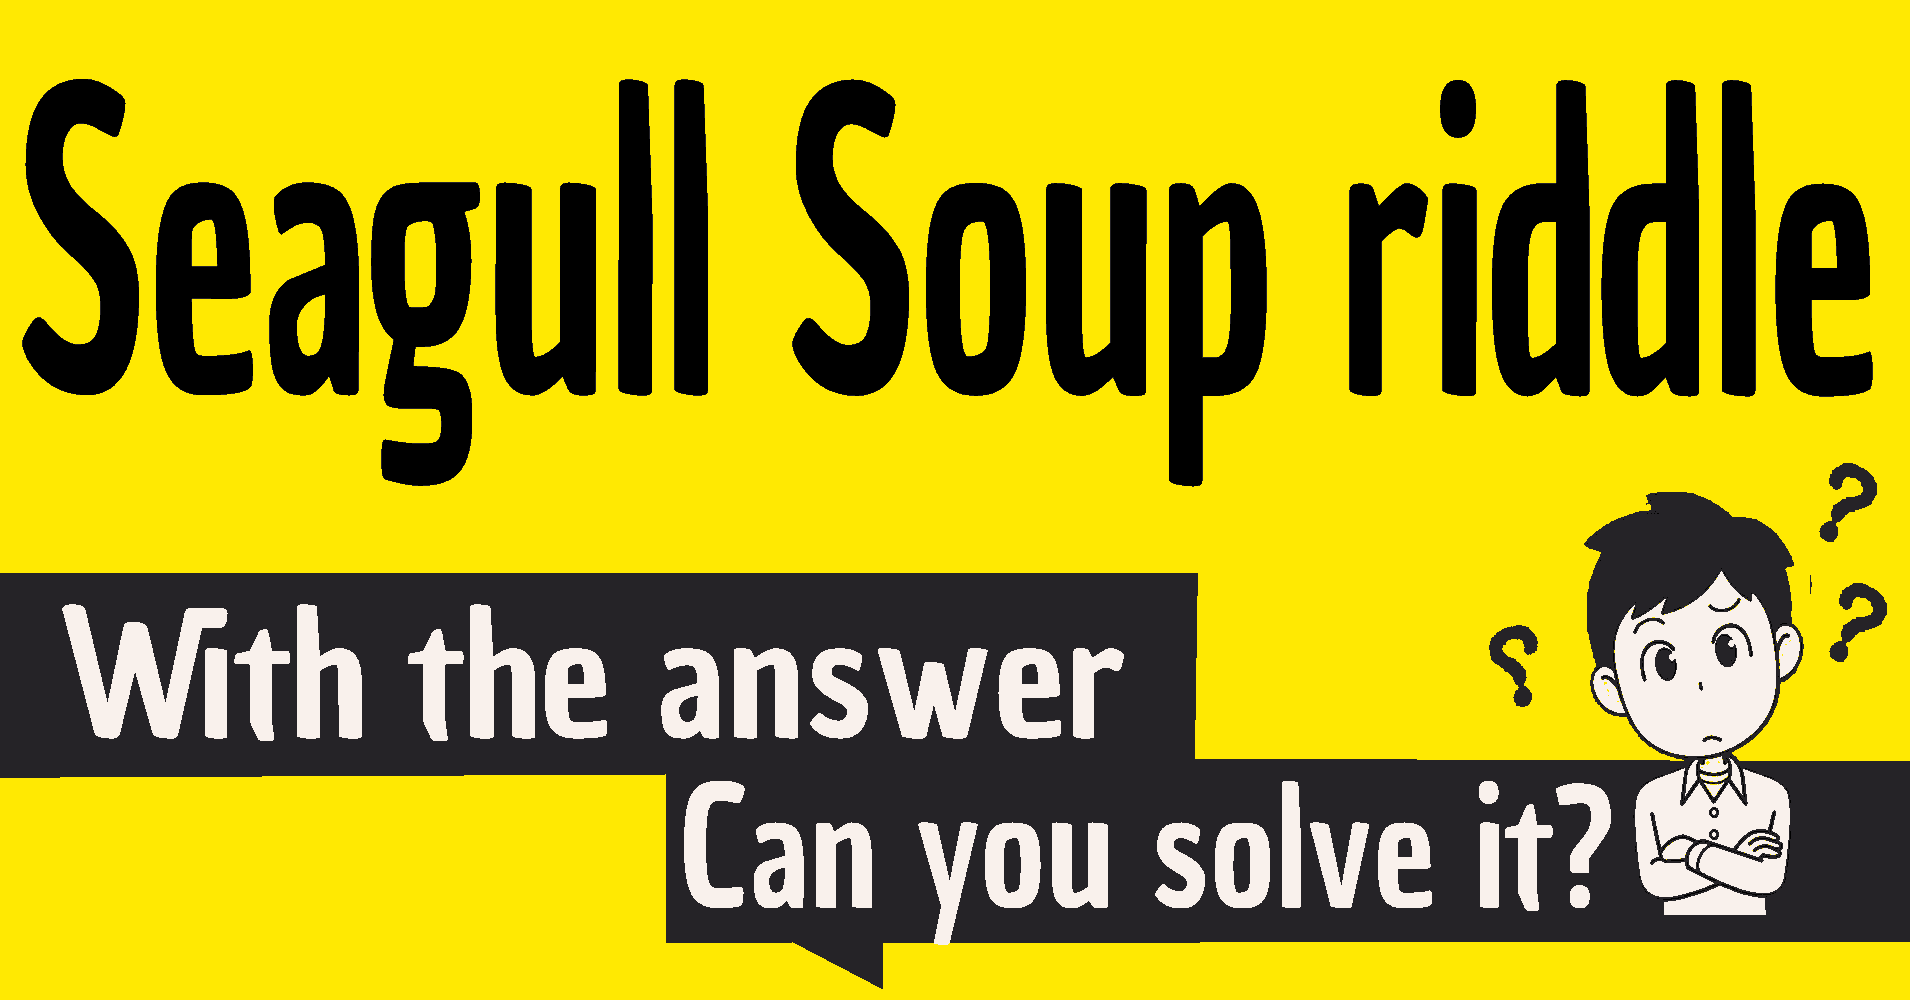 Seagull Soup riddle answer